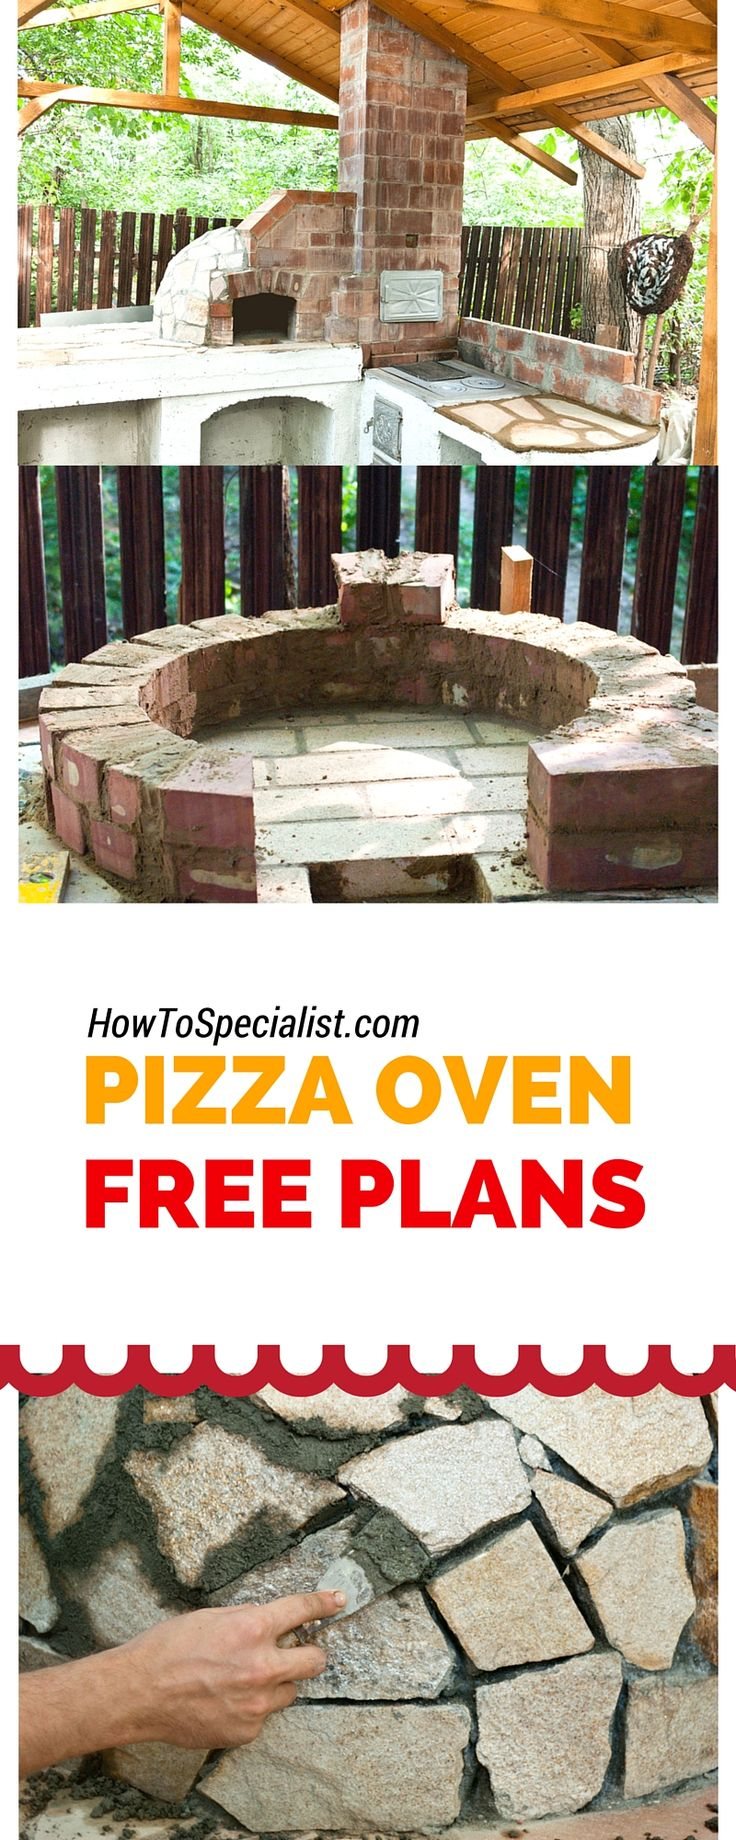 Mediterranean wood fired pizza oven - How To Build A Pizza Oven Tips Ideas Plans And Instructions For A Wood Fired Brick Oven More